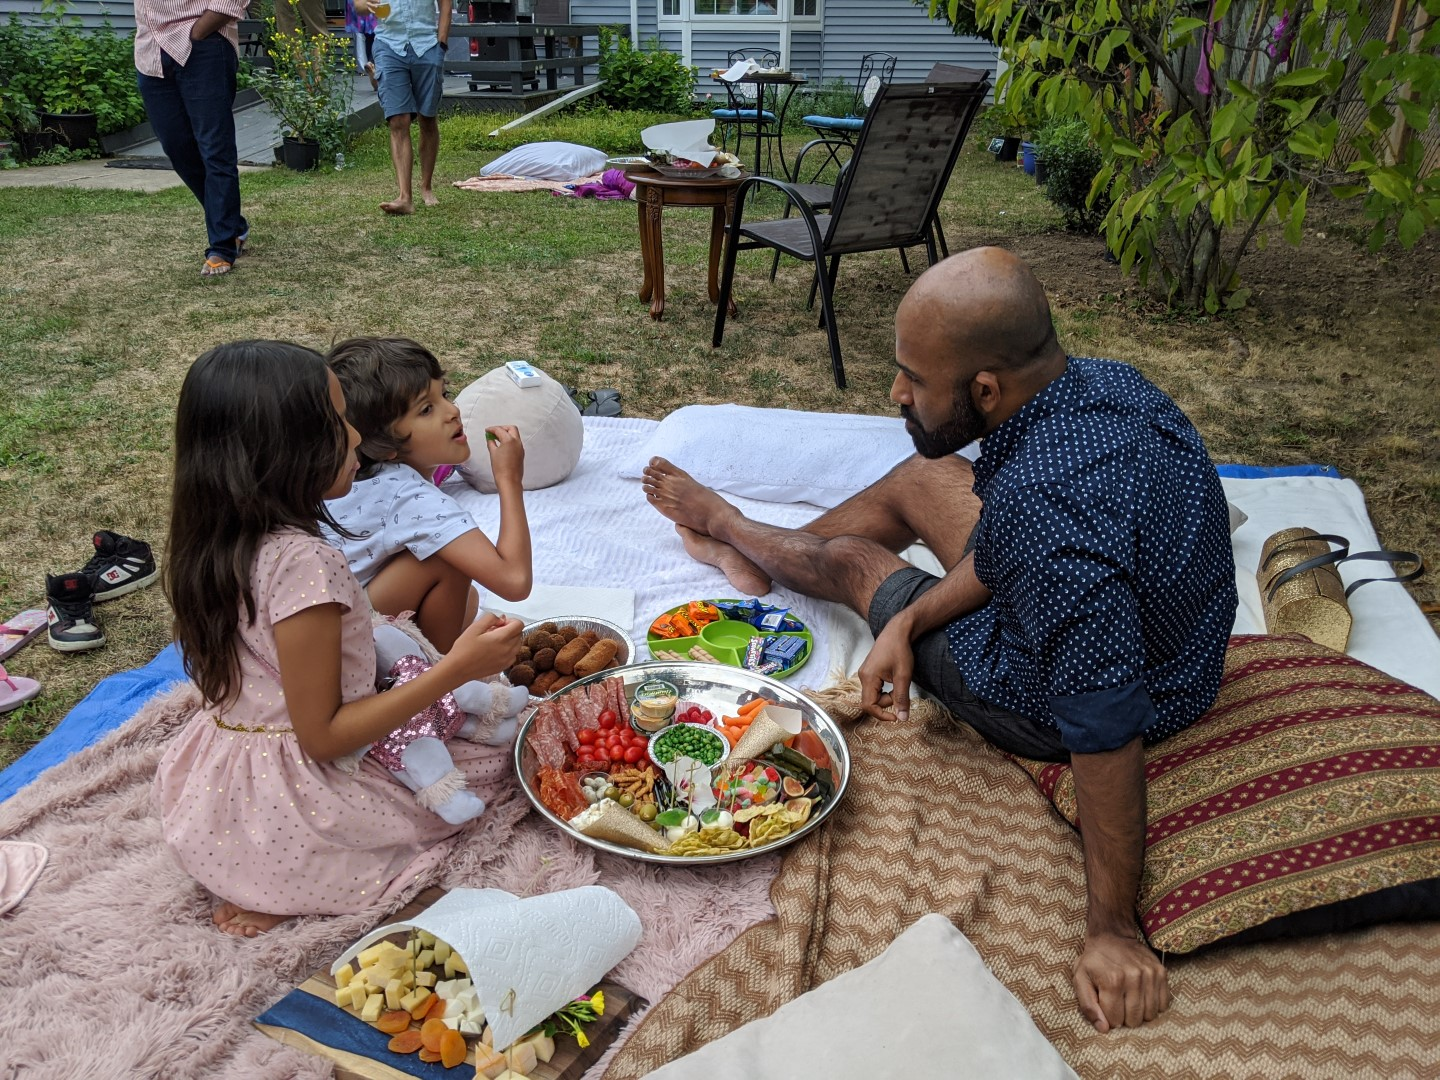 kids enjoying garden party picnic with uncle